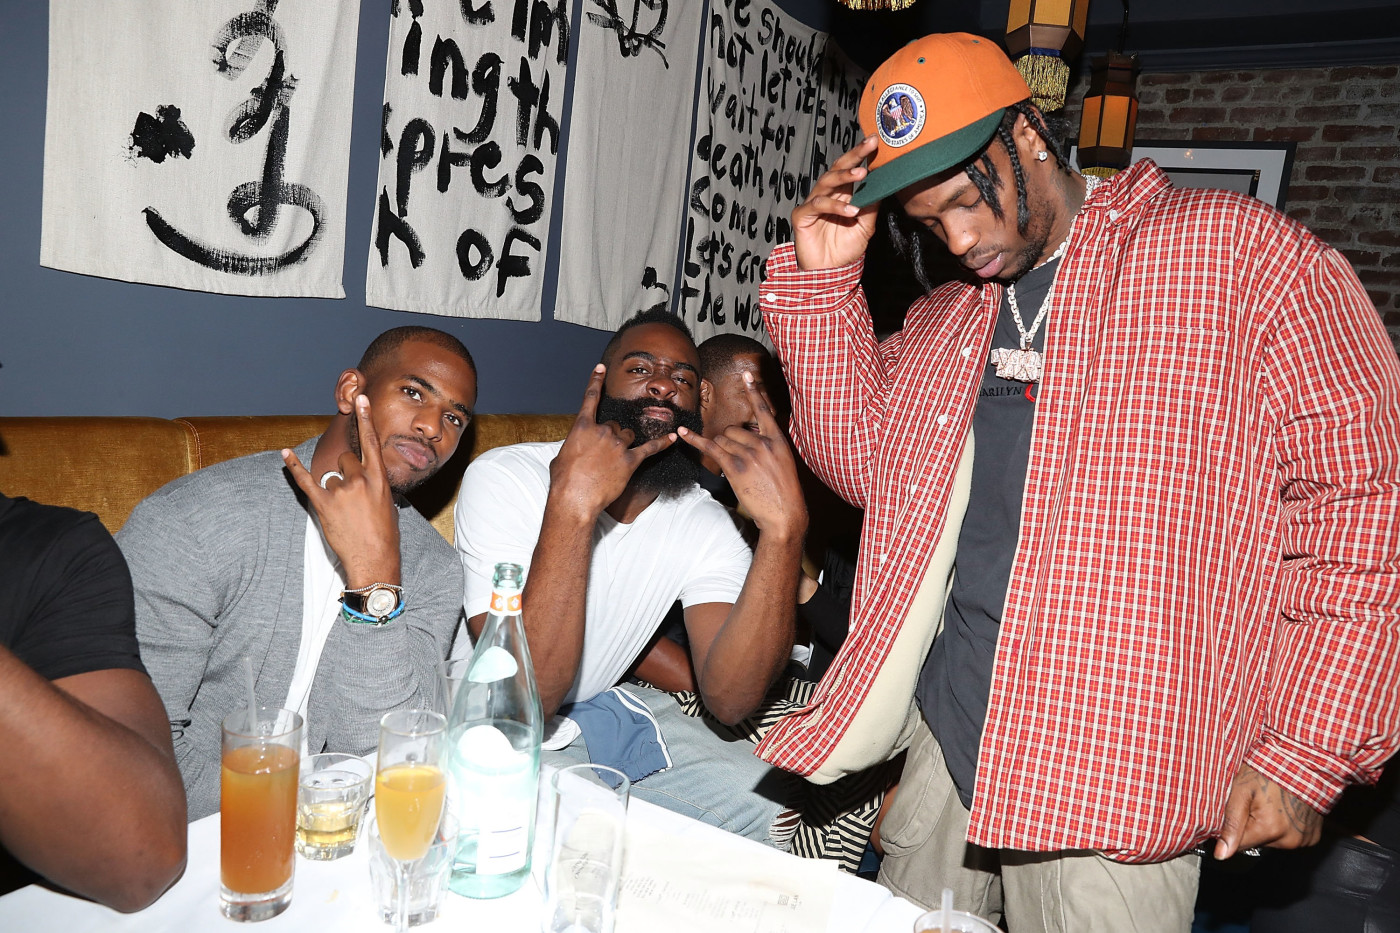 Chris Paul, James Harden & Travis Scott at Jue Lan Club NYC